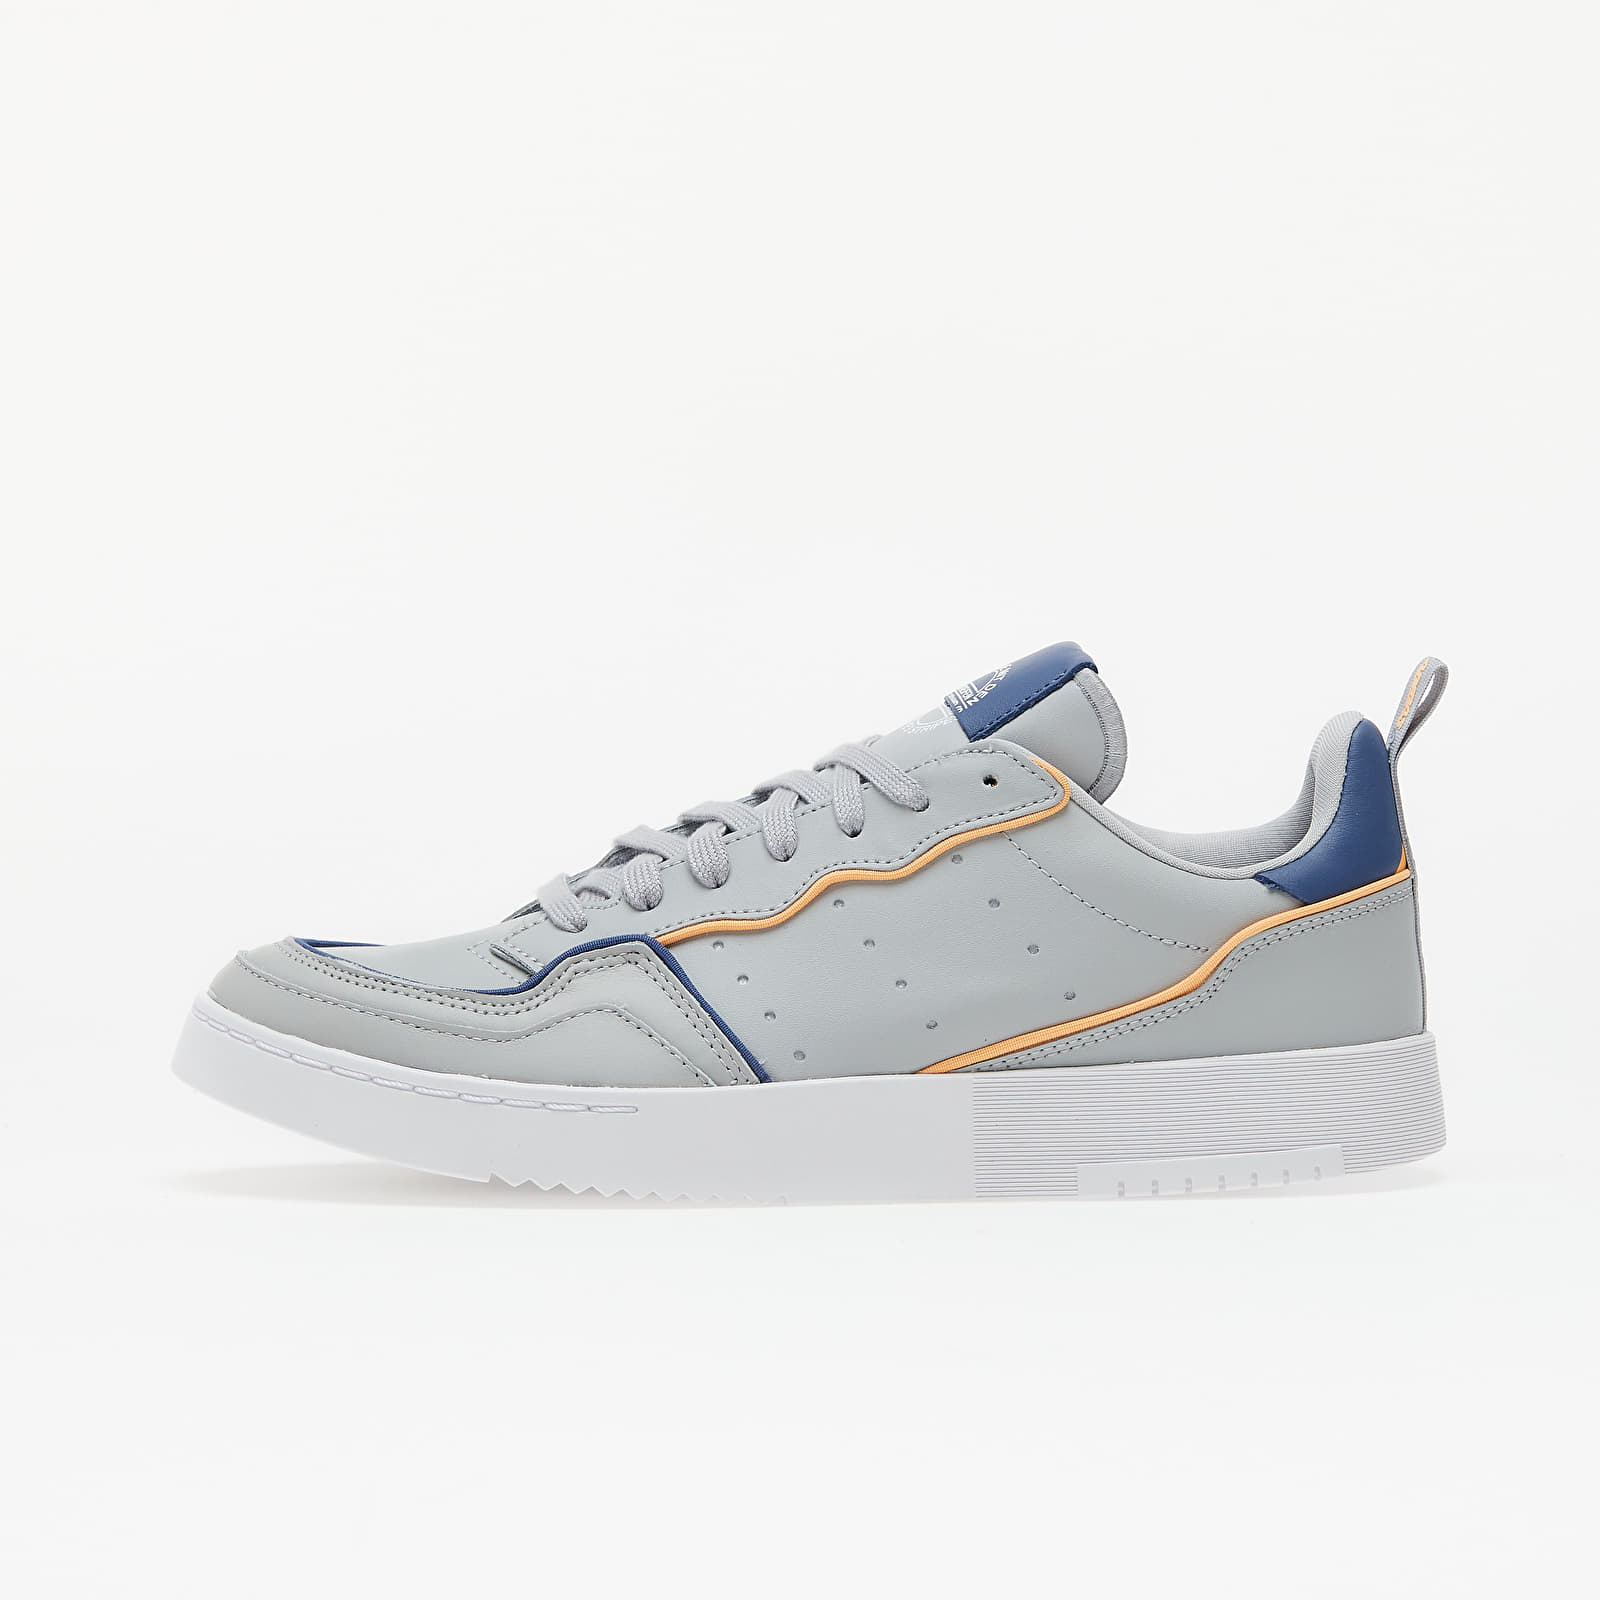 adidas Supercourt Grey Two/ Ftwr White/ Crew Blue